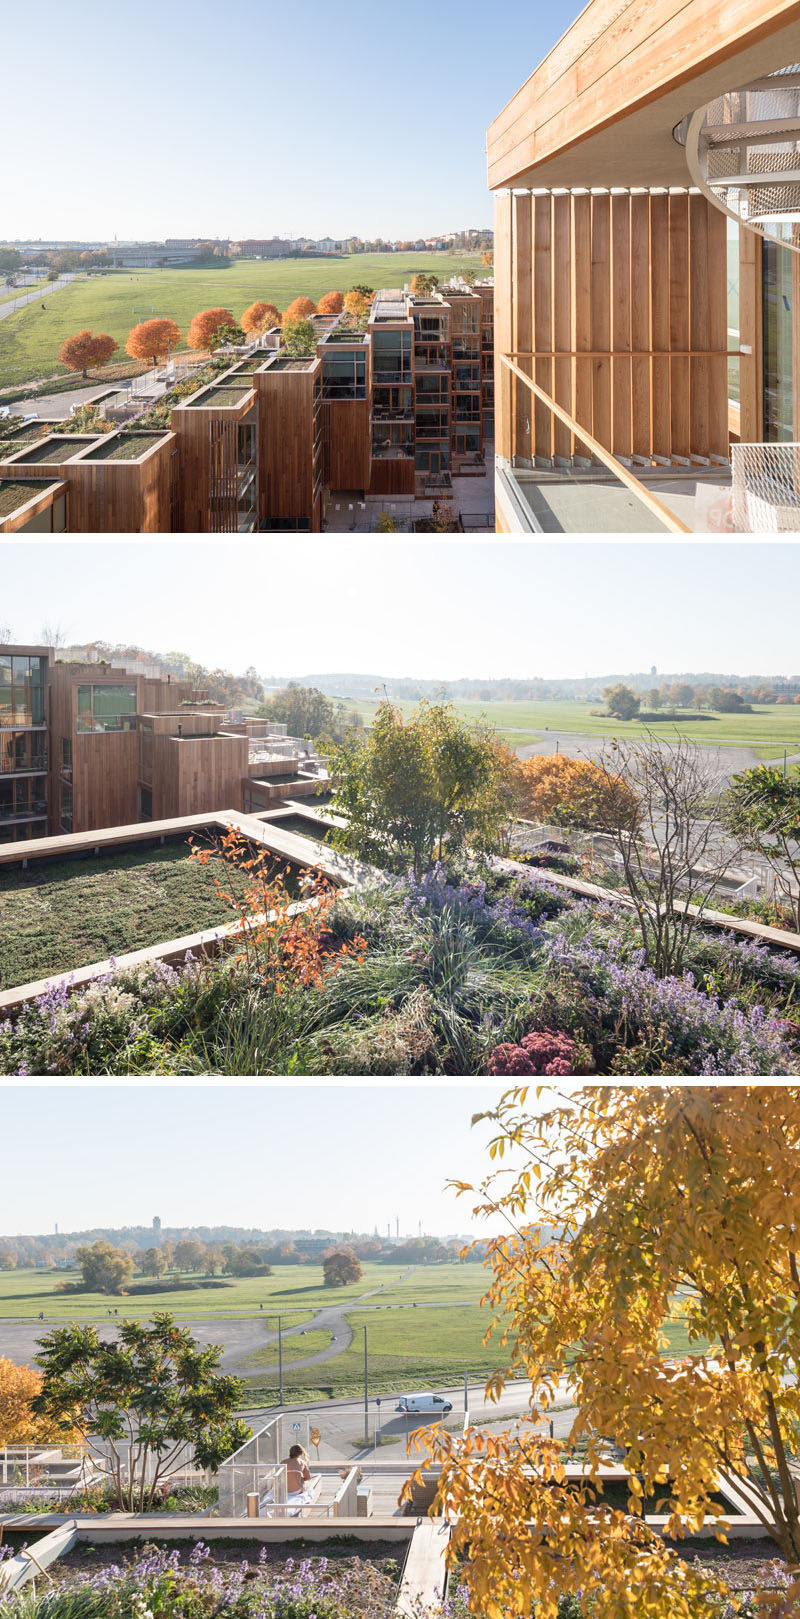 Due to the terraced design of this modern building, the architects created green roofs and patios, that give upper residences a nice natural view that complements the parkland. #GreenRoof #Rooftops #Architecture